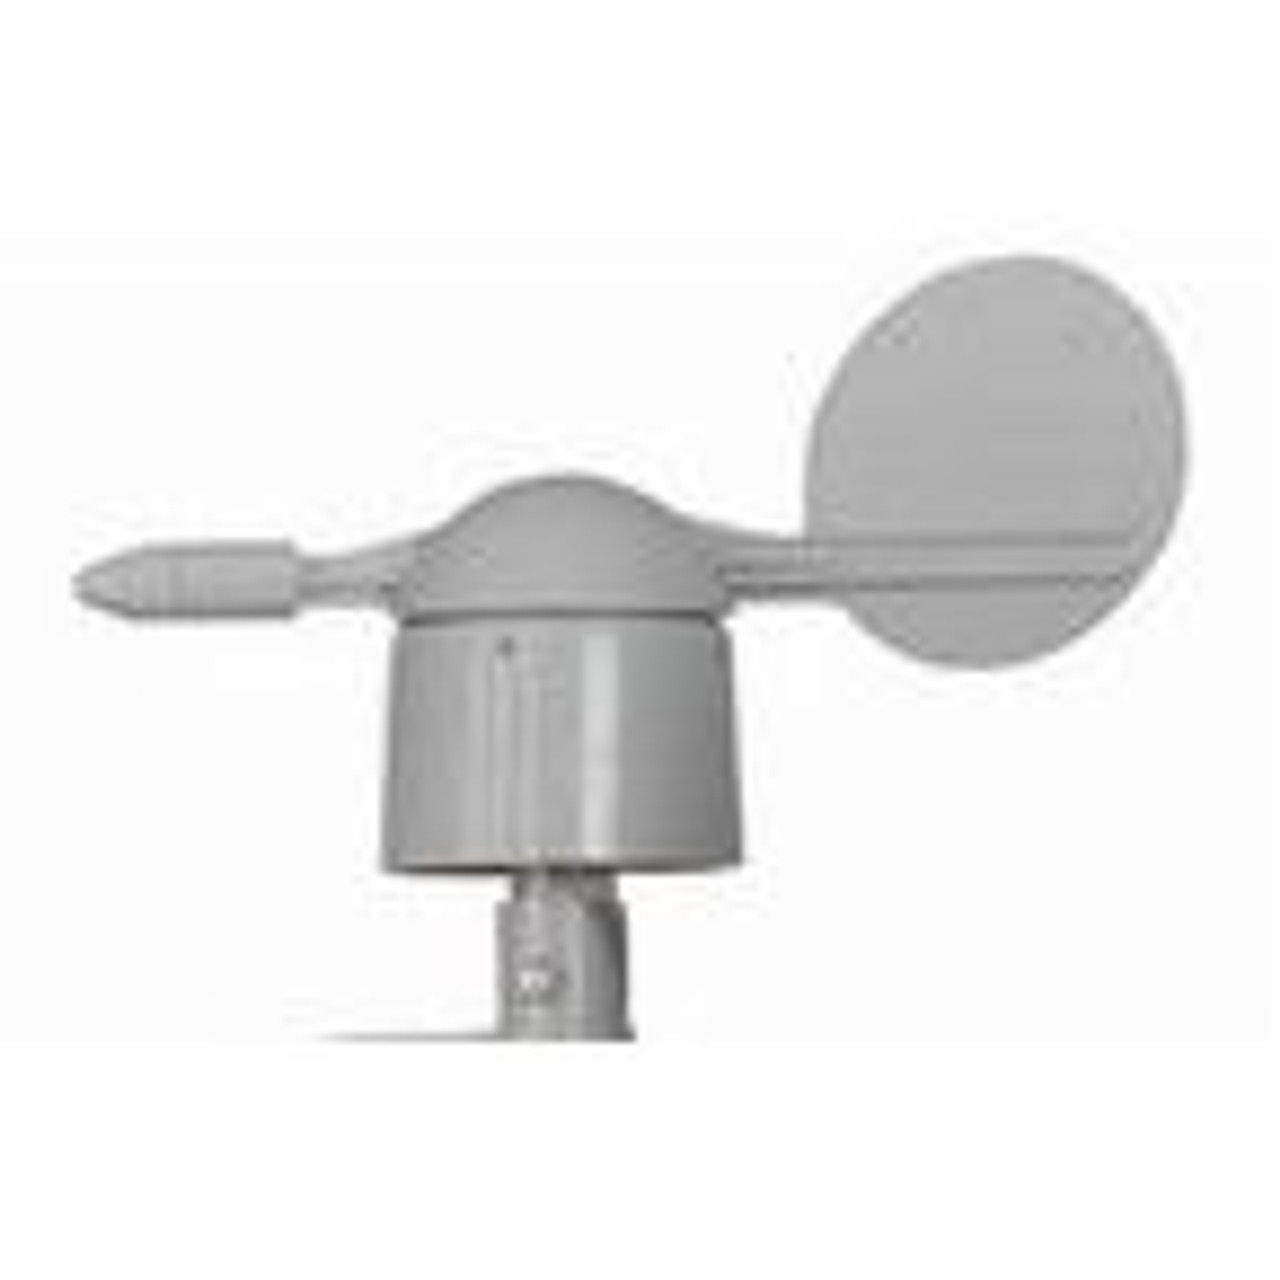 Wind Direction for Weather Stations WH1081 WS1081, WS1083, WS1093, WS2083, WS3083